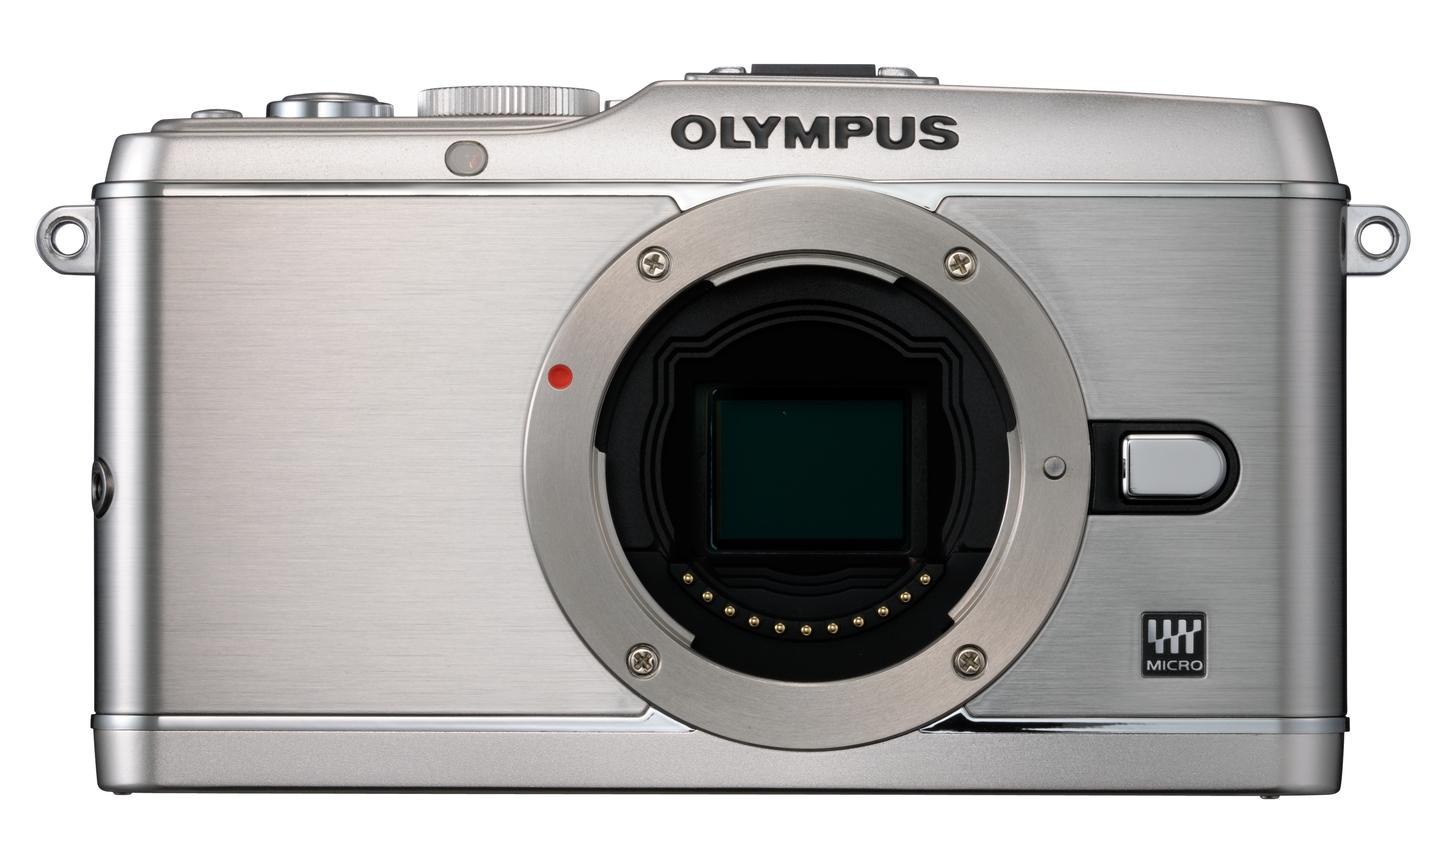 The new flagship Olympus PEN E-P3 camera